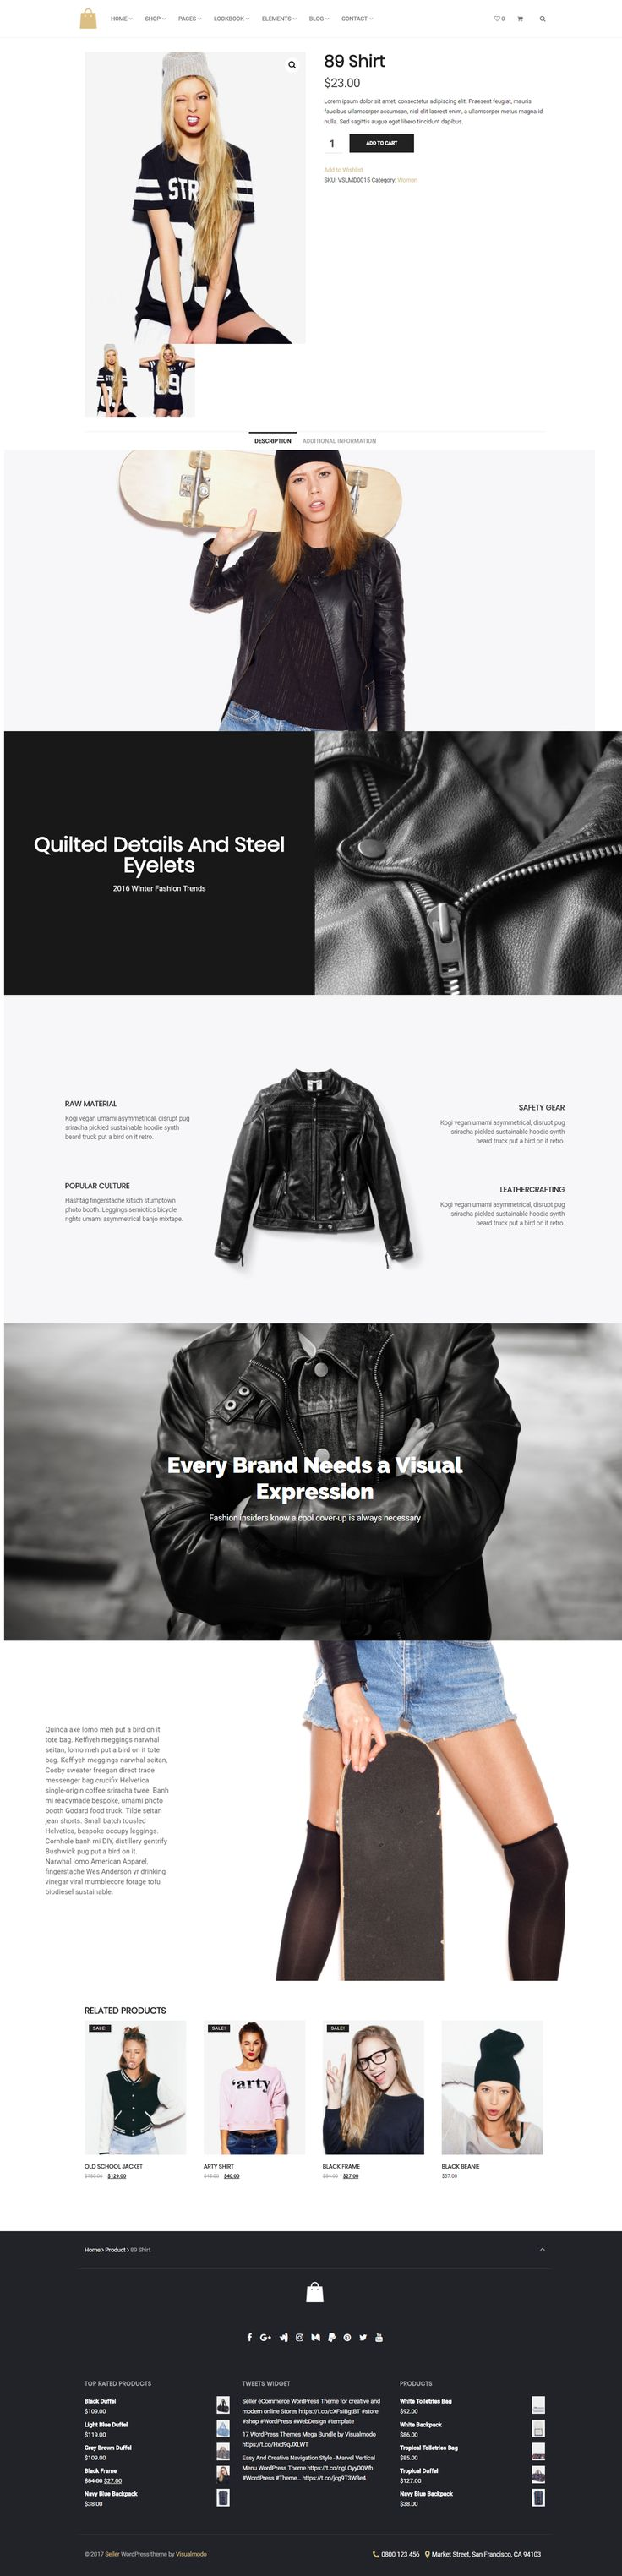 137 best WordPress Themes and Plugins images on Pinterest ...